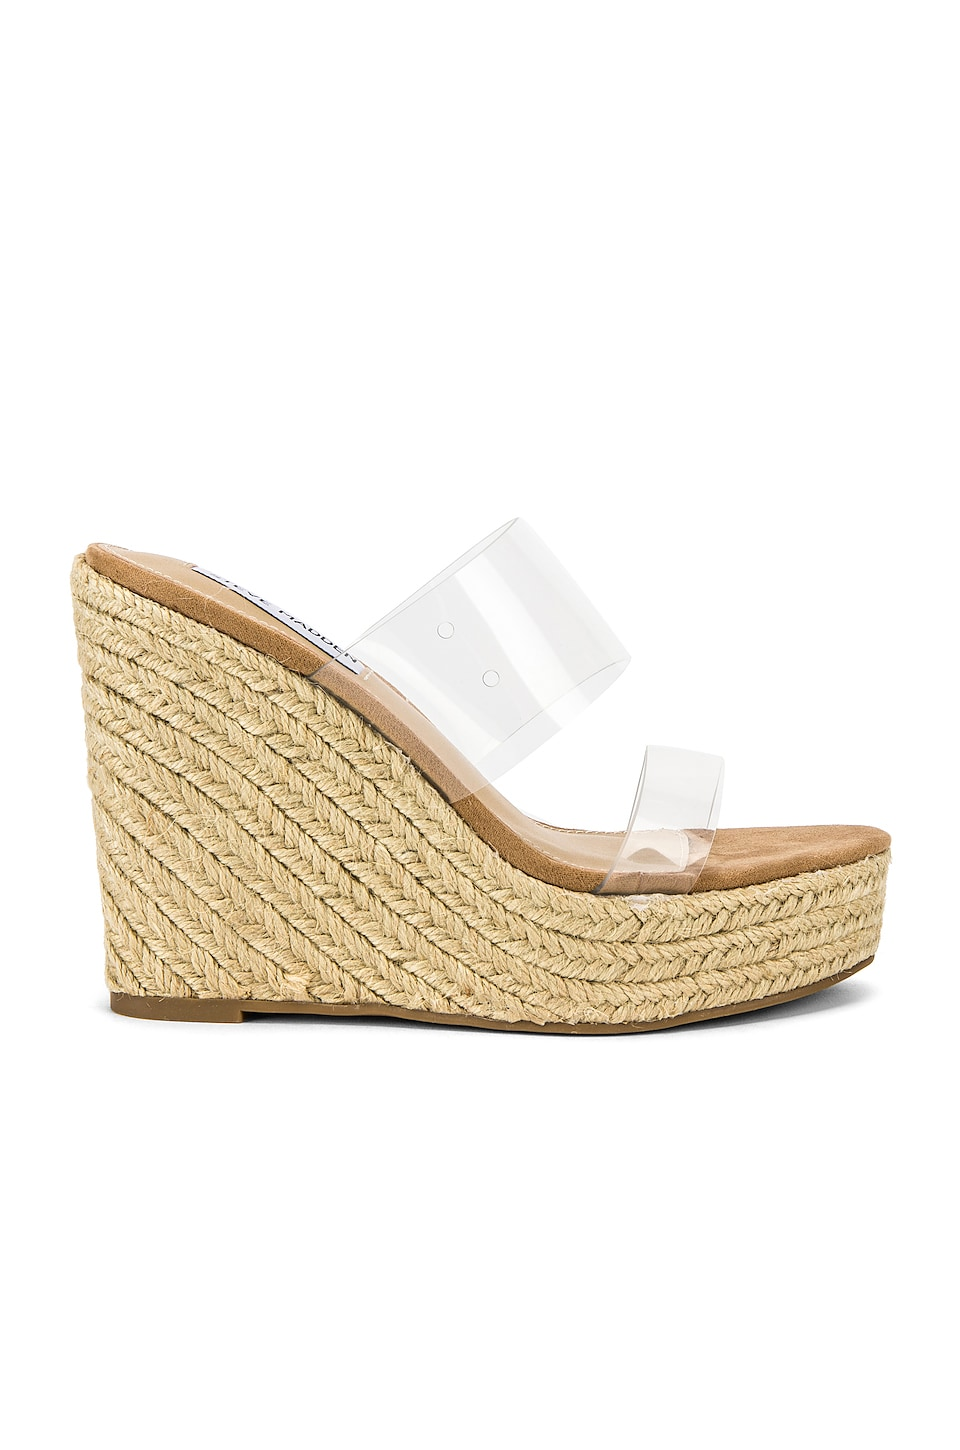 Steve Madden Sunrise Wedge in Clear